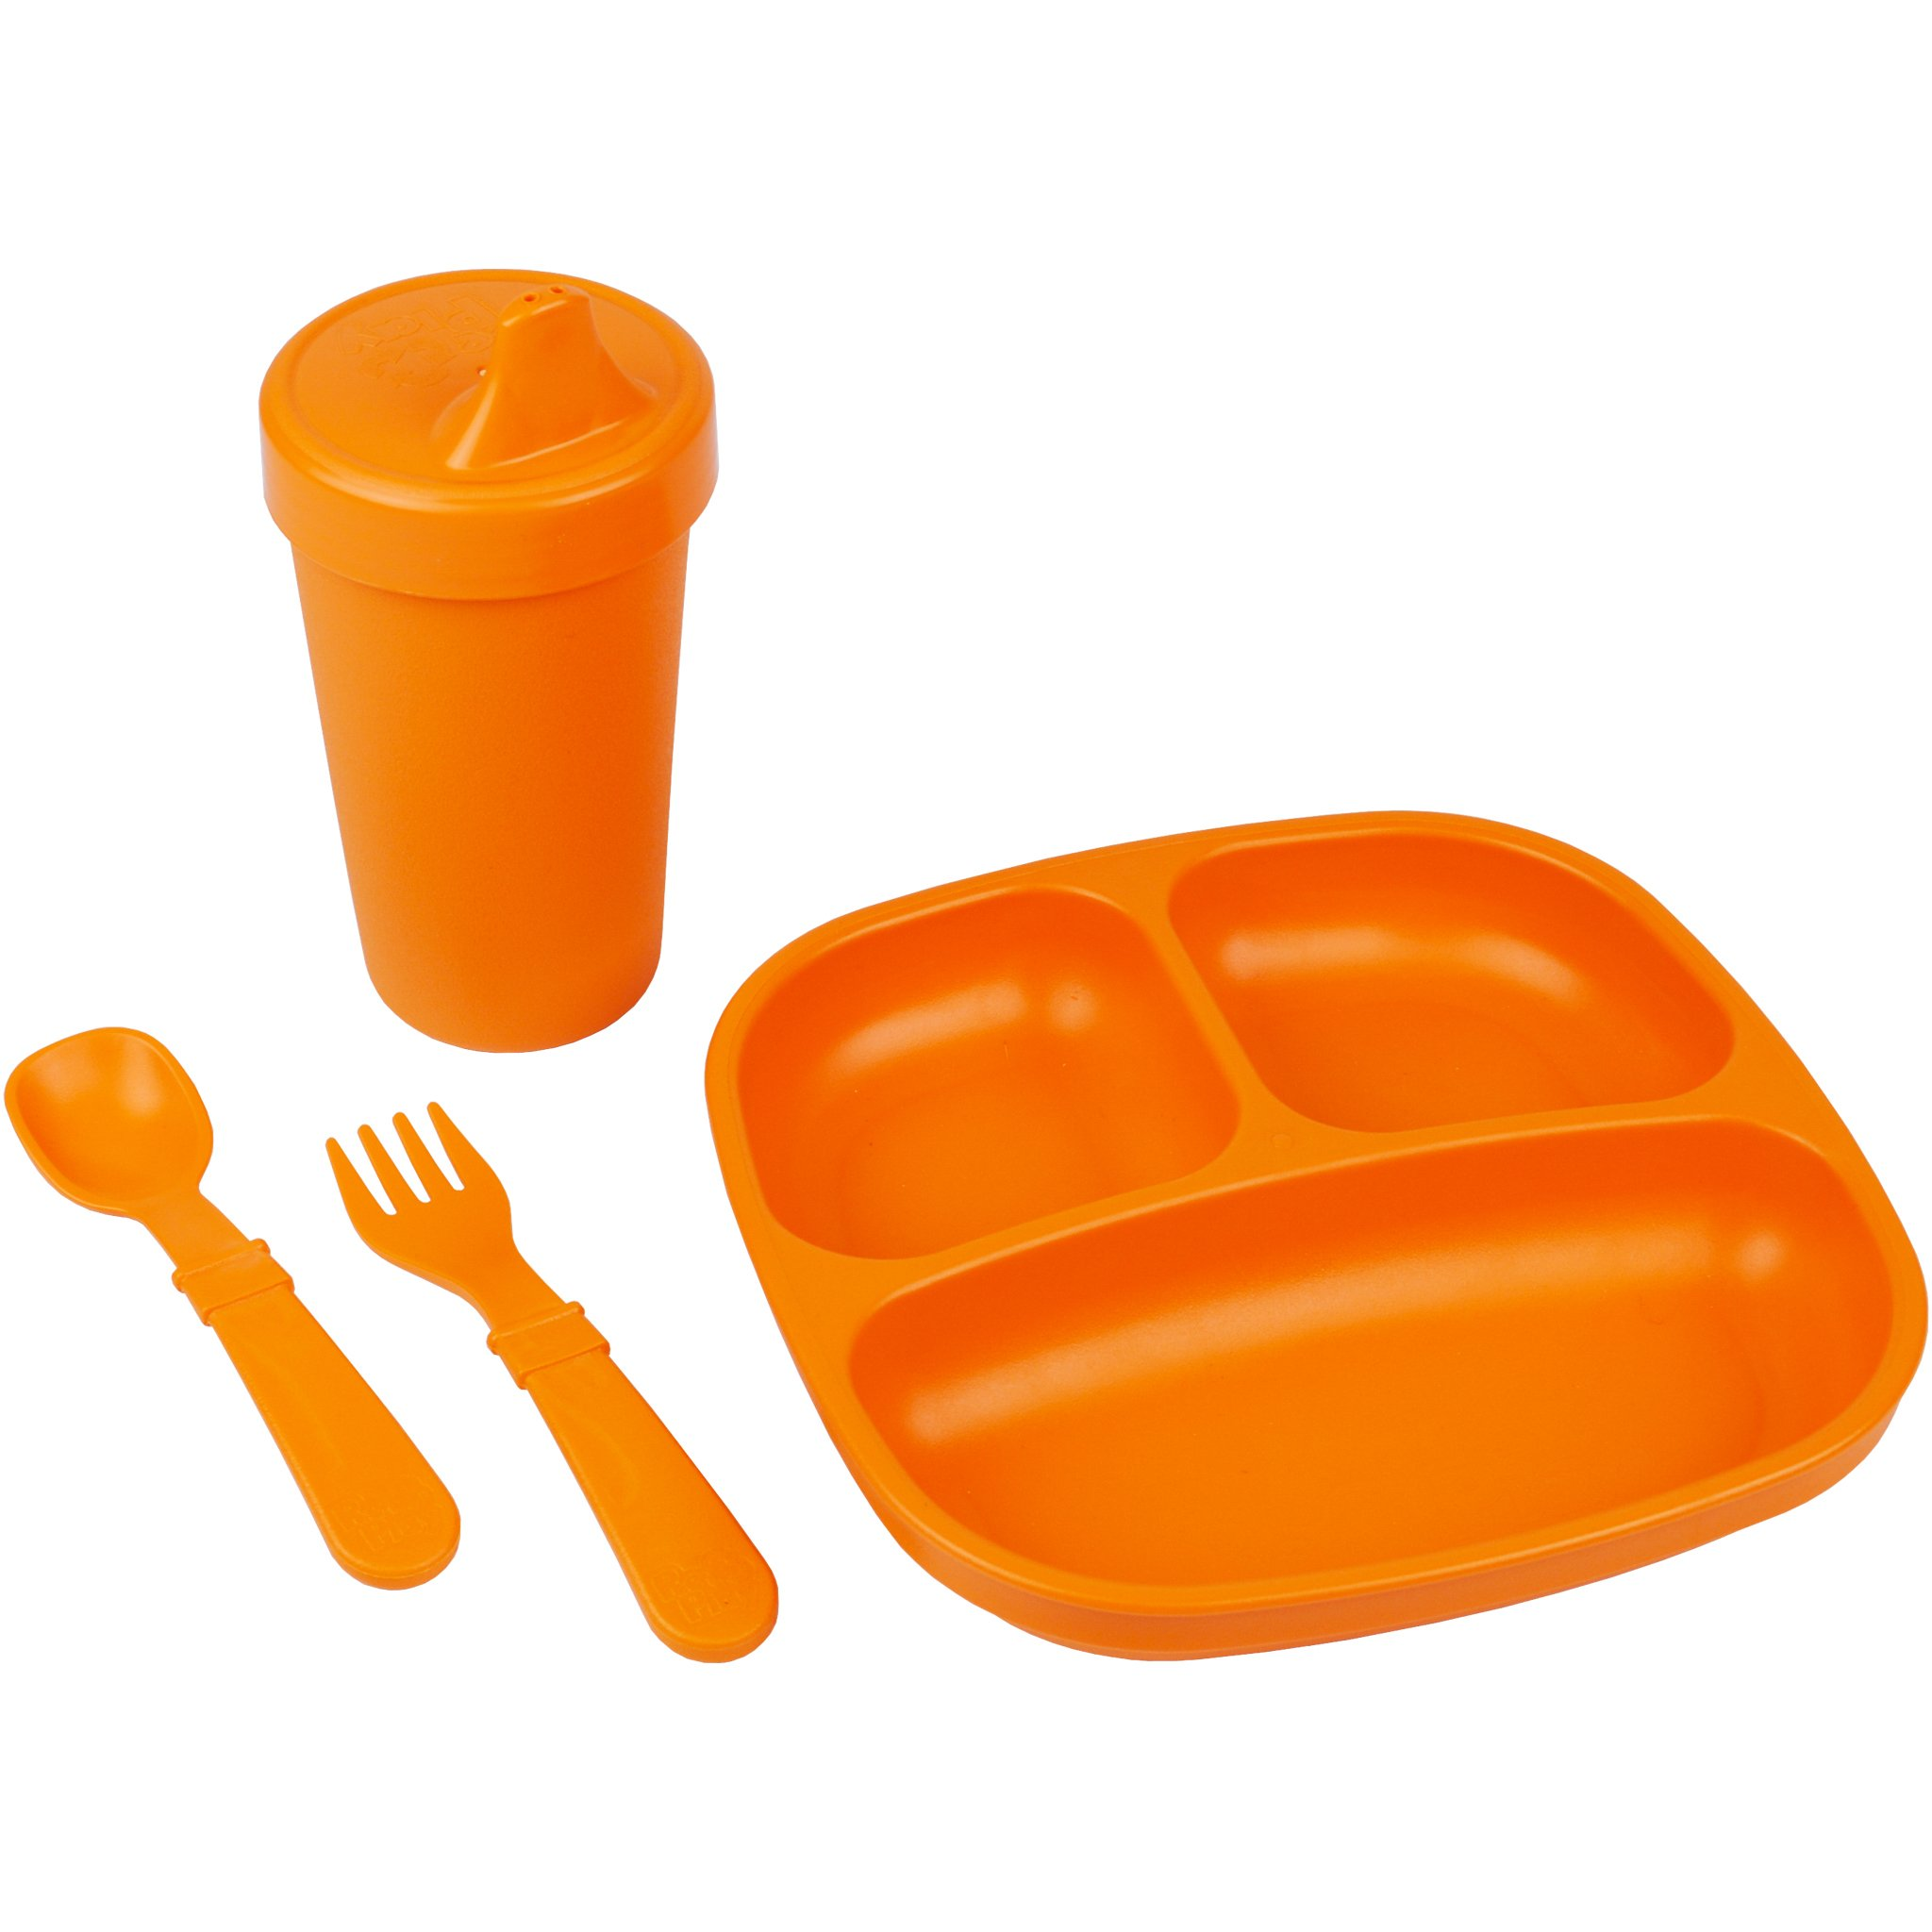 Re-Play Made in The USA Toddler Diner Set | Divided Plate, No Spill Sippy Cup, Utensil Set | Eco Friendly Heavyweight Recycled Milk Jugs - Virtually Indestructible | Orange